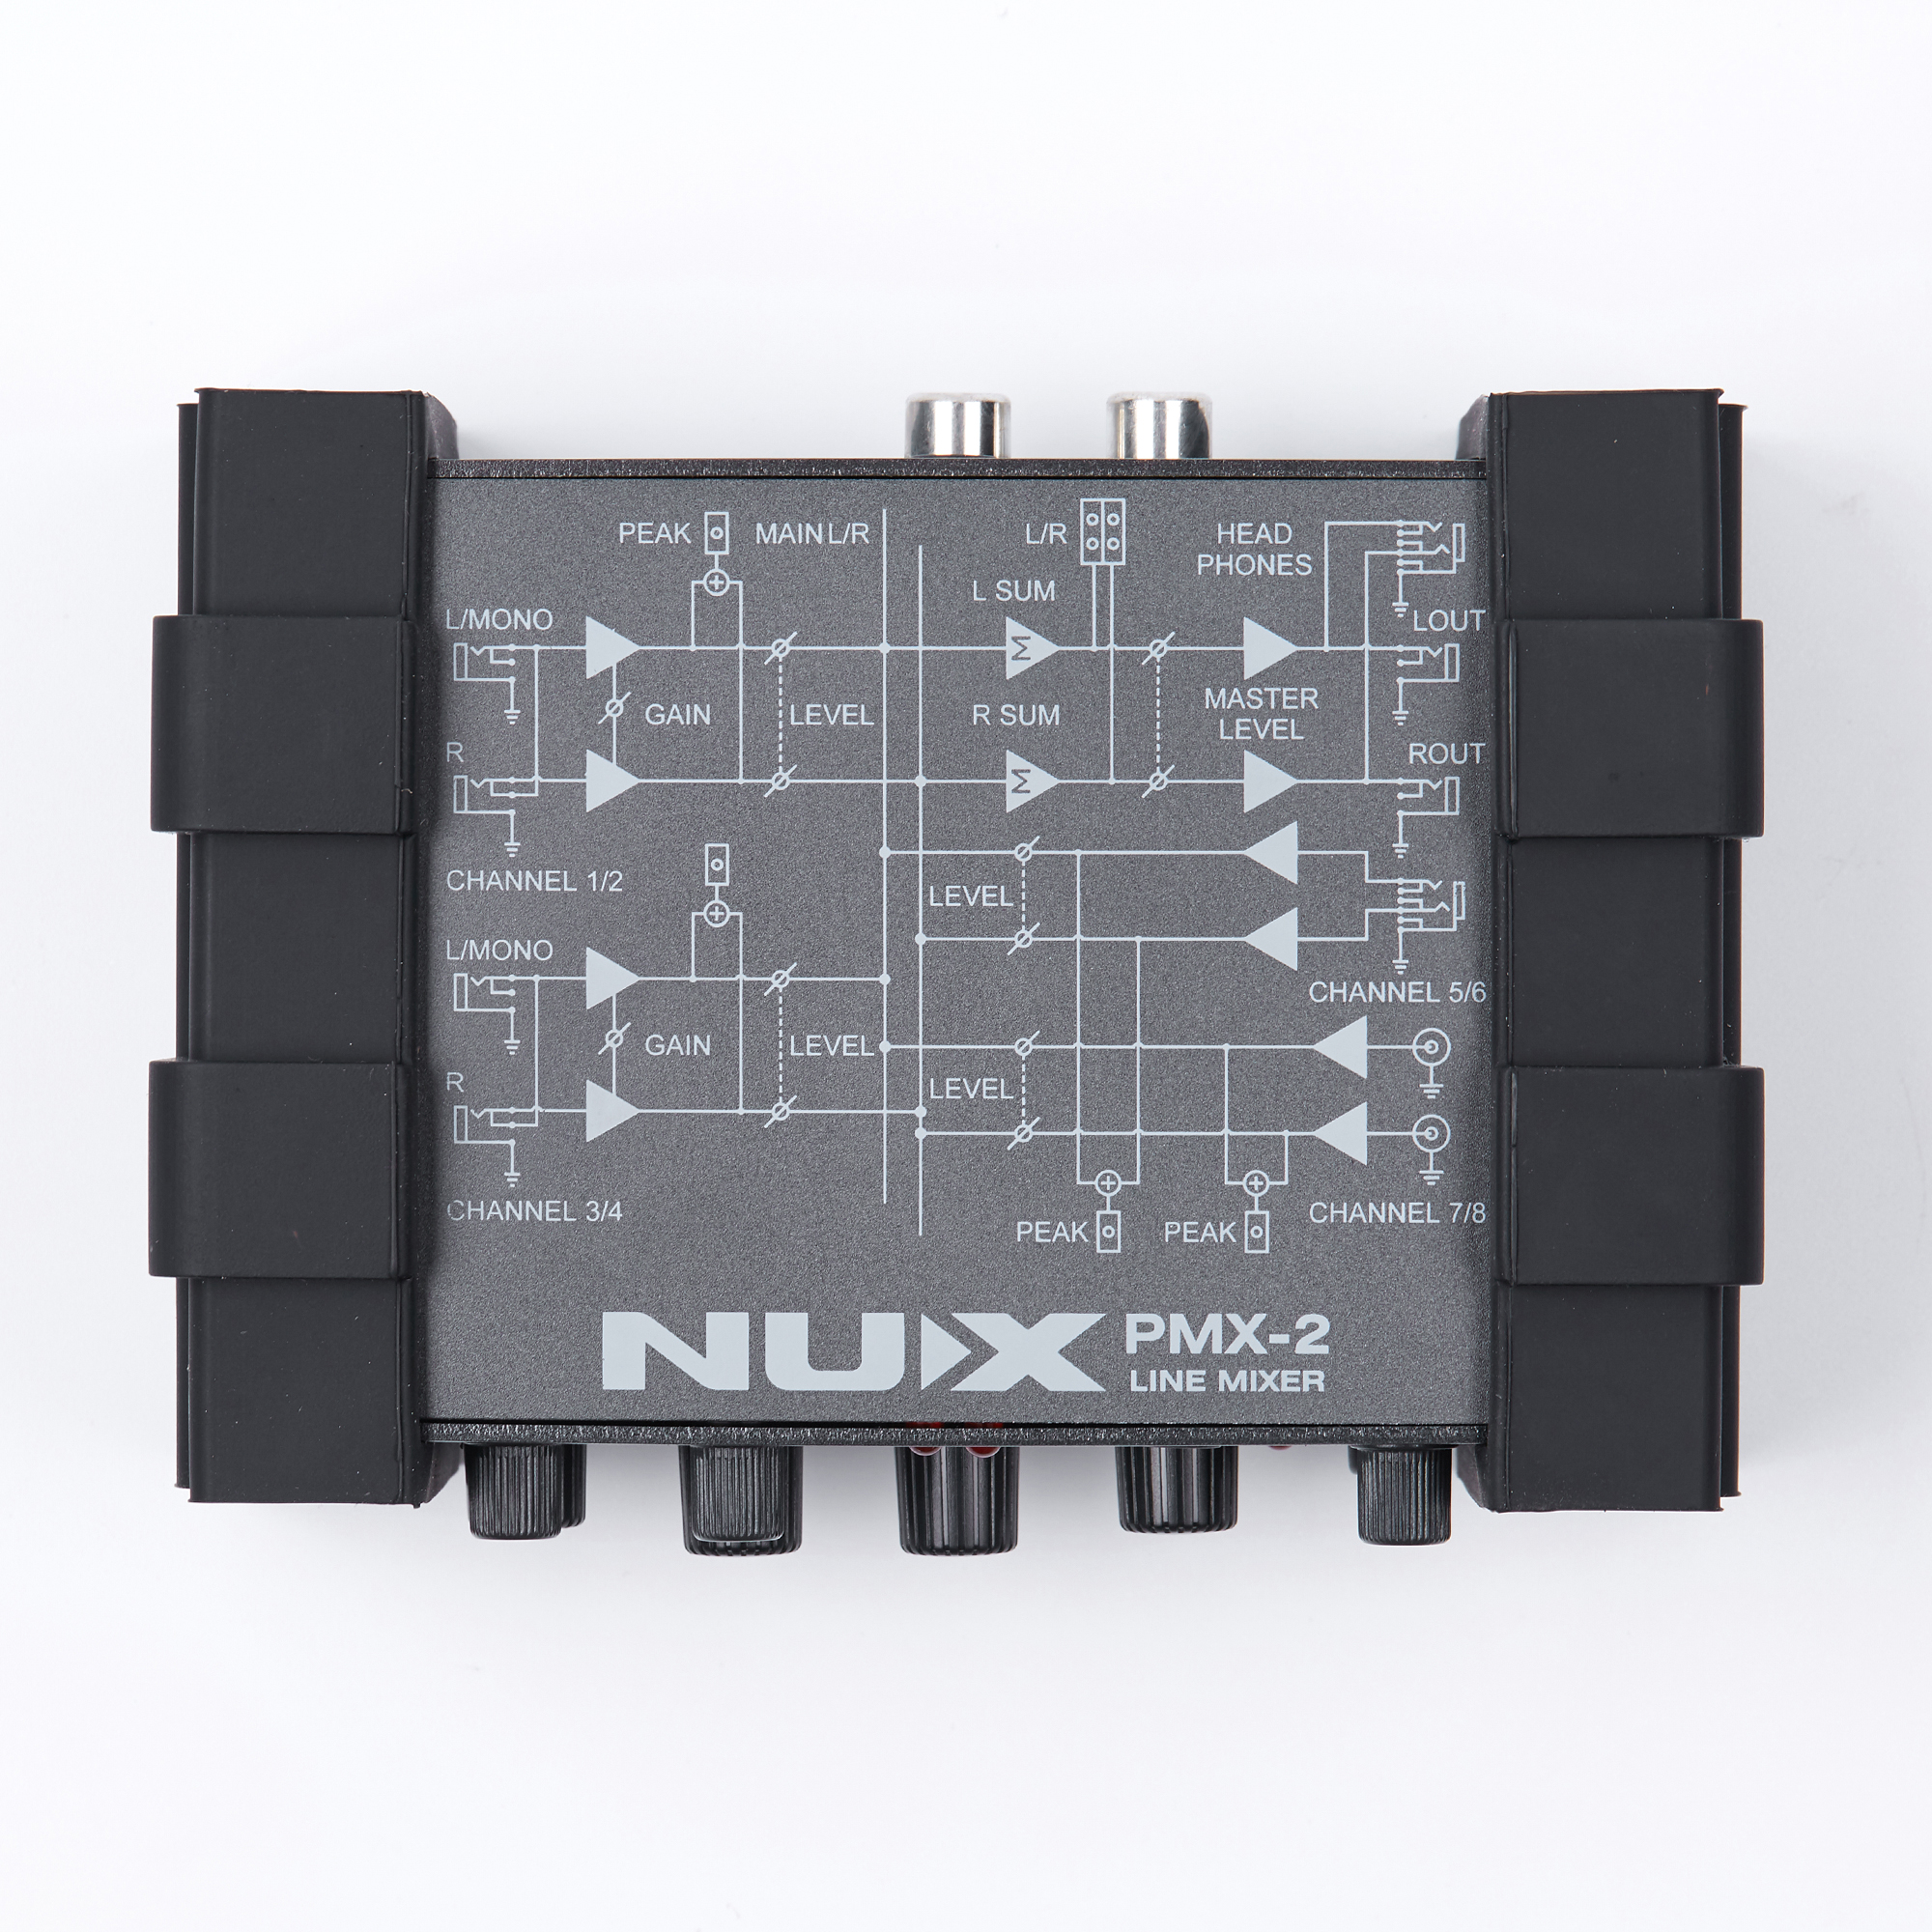 Gain Control 8 Inputs and 2 Outputs NUX PMX-2 Multi-Channel Mini Mixer 30 Musical Instruments Accessories for Guitar Bass Player hetman ntfs recovery офисная версия цифровая версия